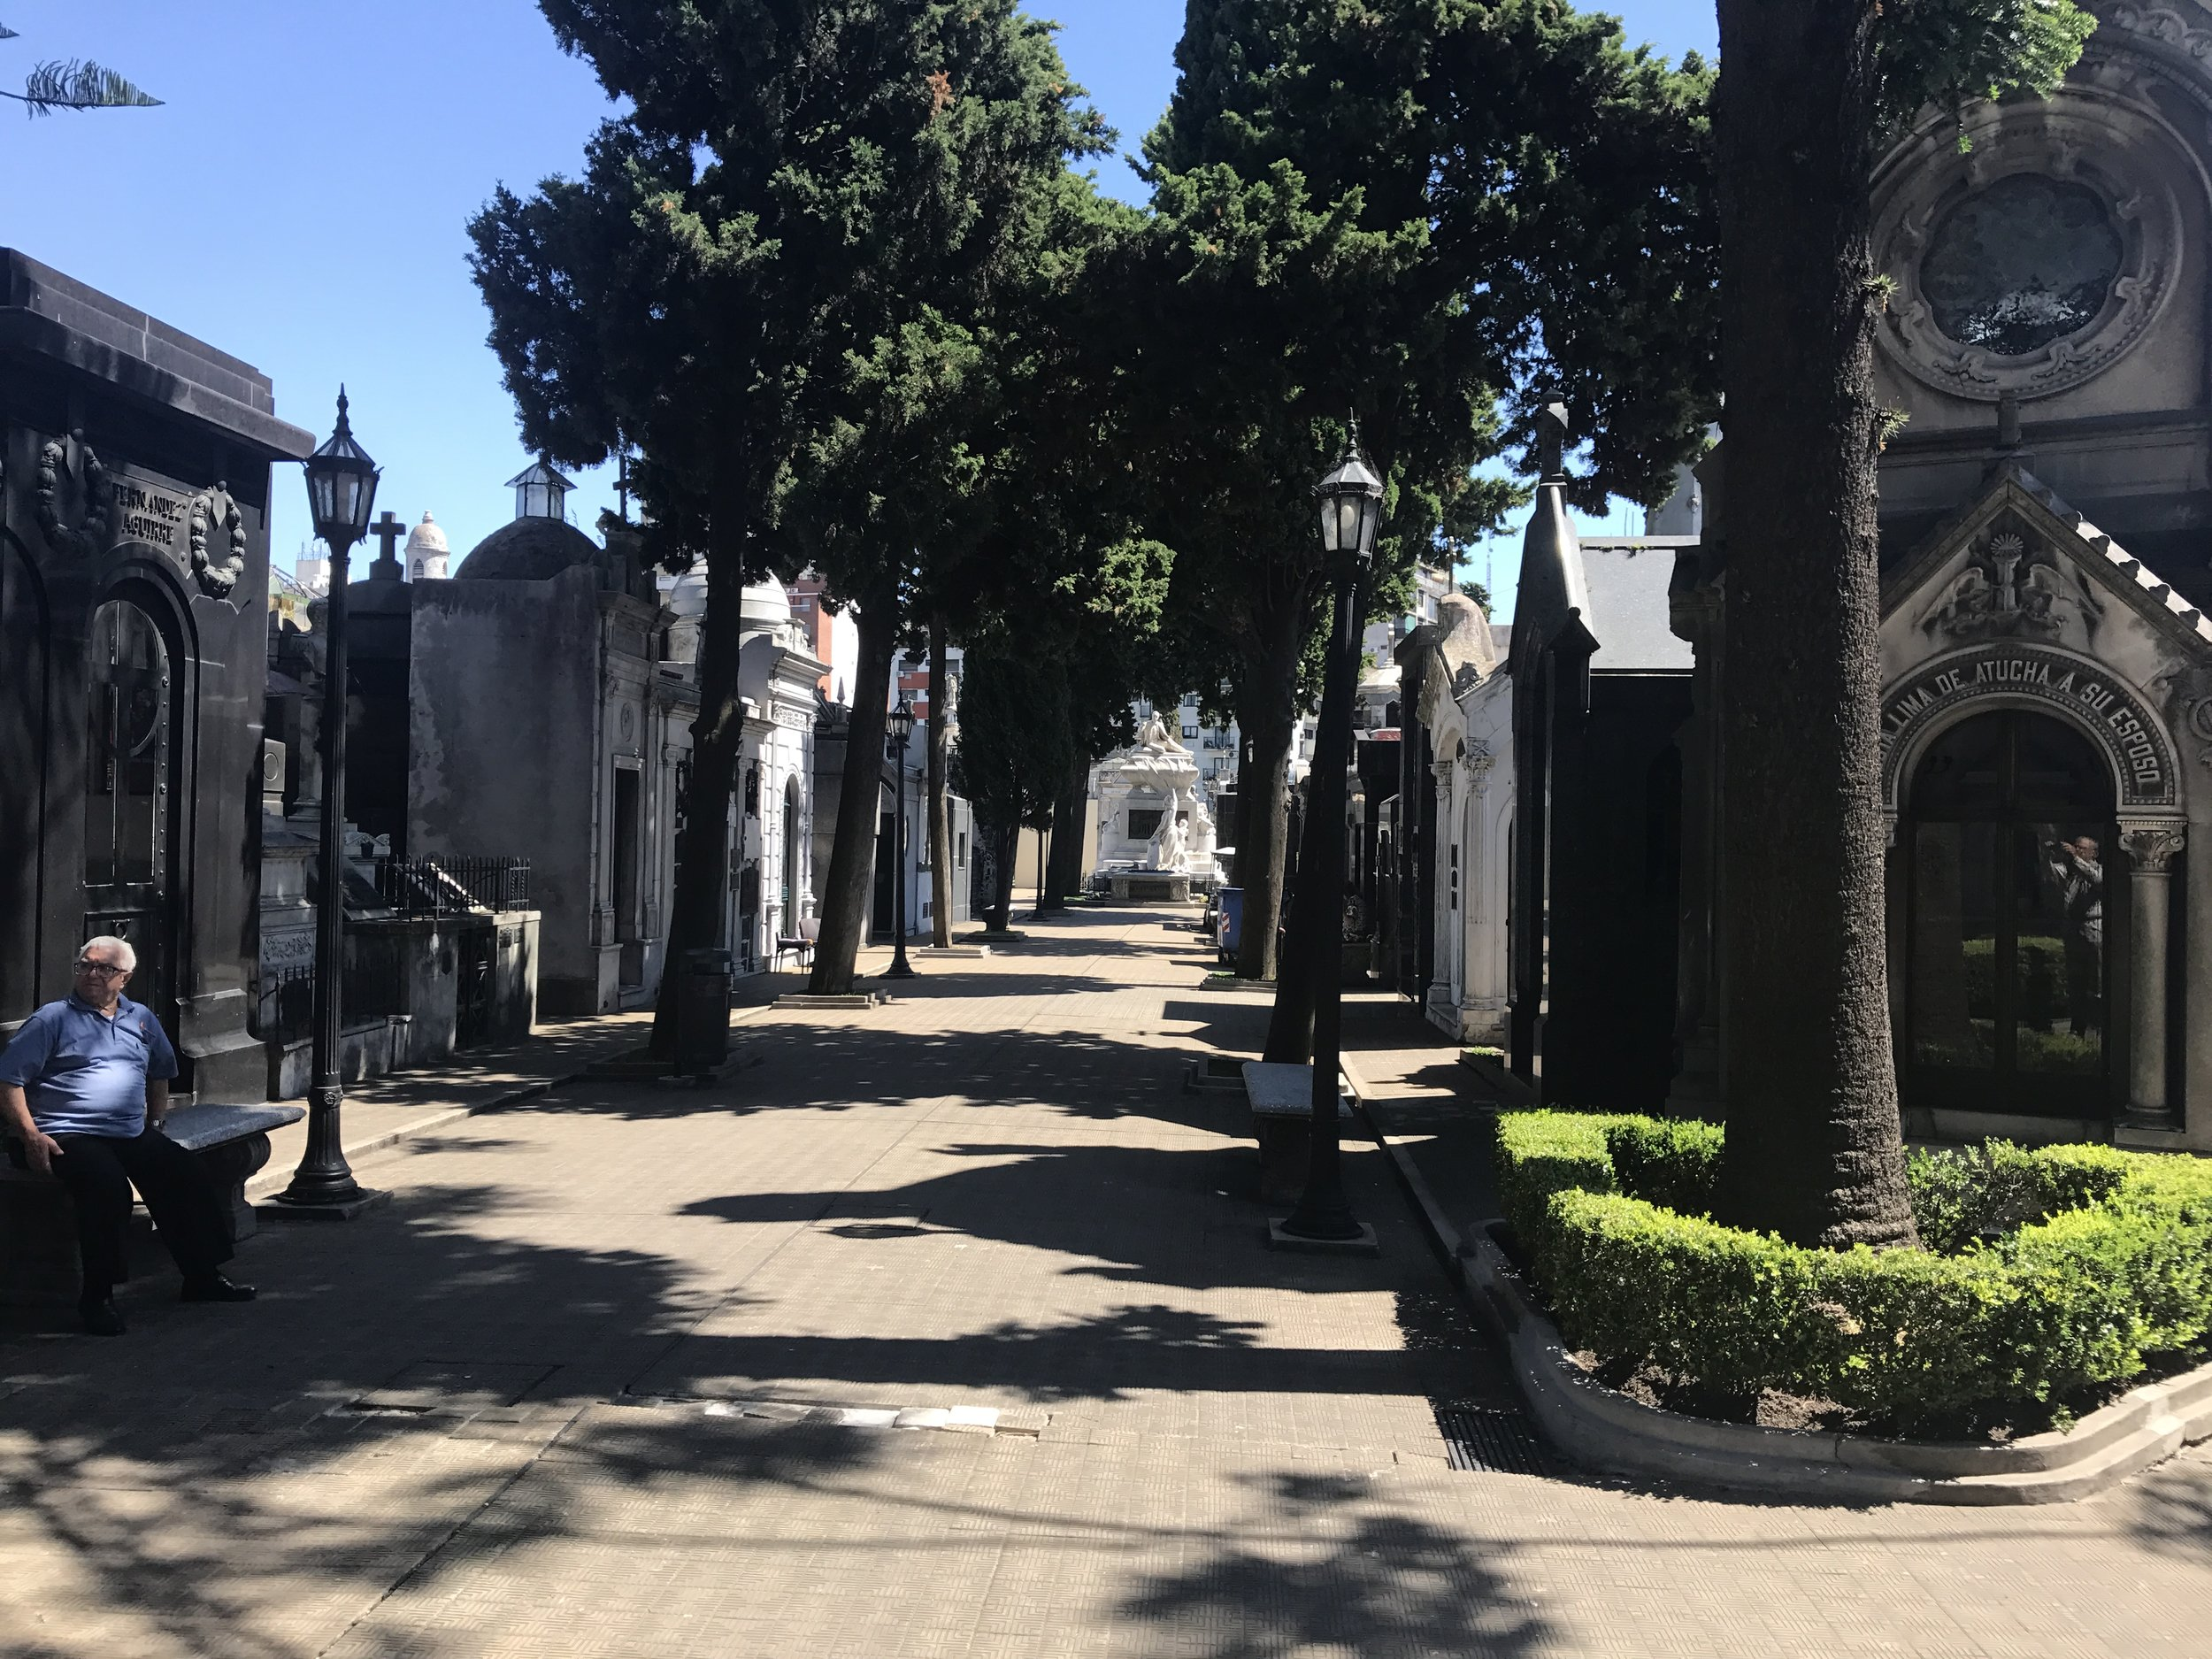 Recoleta Cemetery where many famous people are buried.